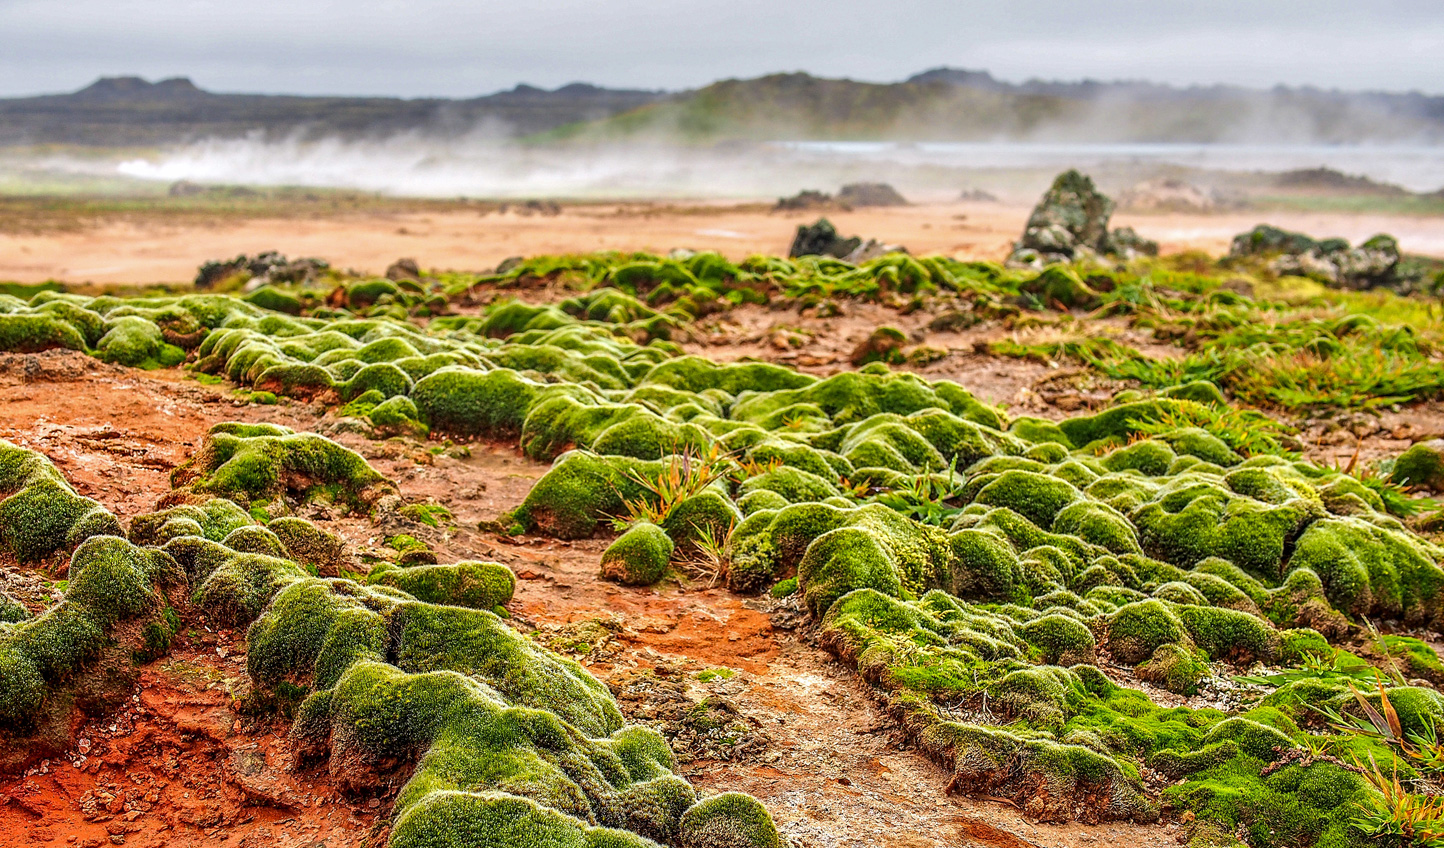 Traverse Iceland's lunar like landscapes, strewn with moss and lava